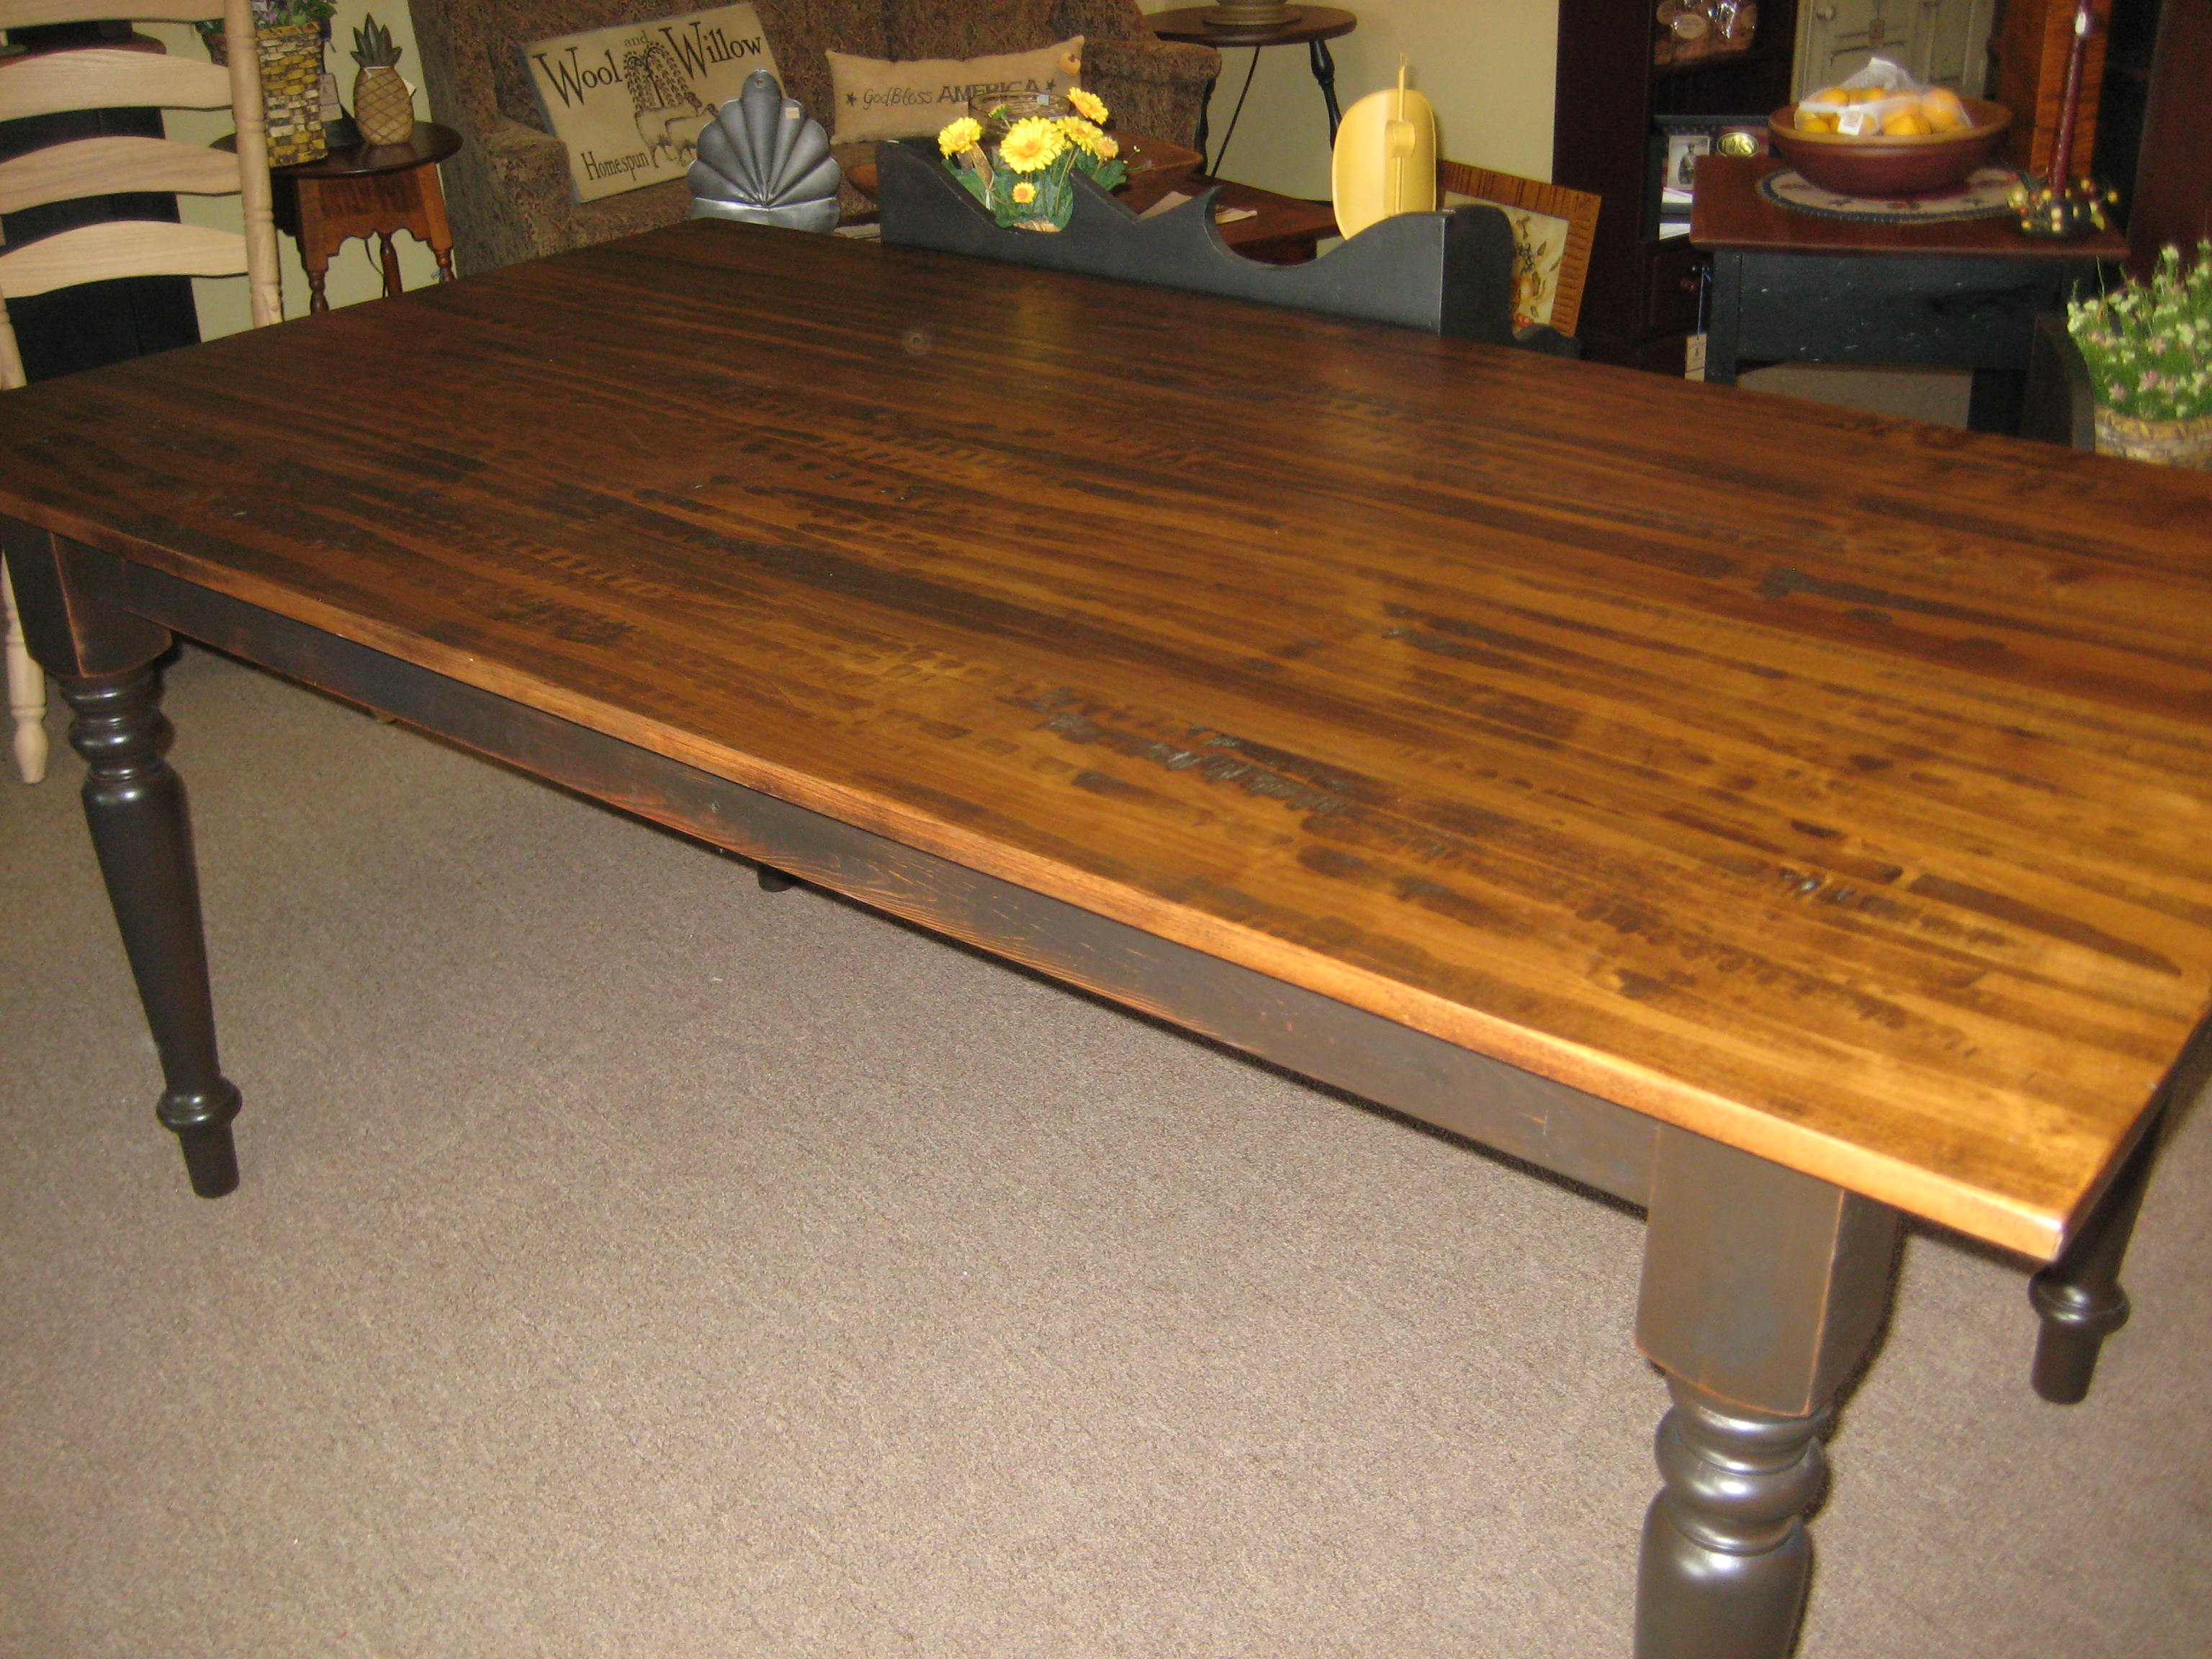 Delightful Harvest Table With Hand Scraped Brown Maple Top